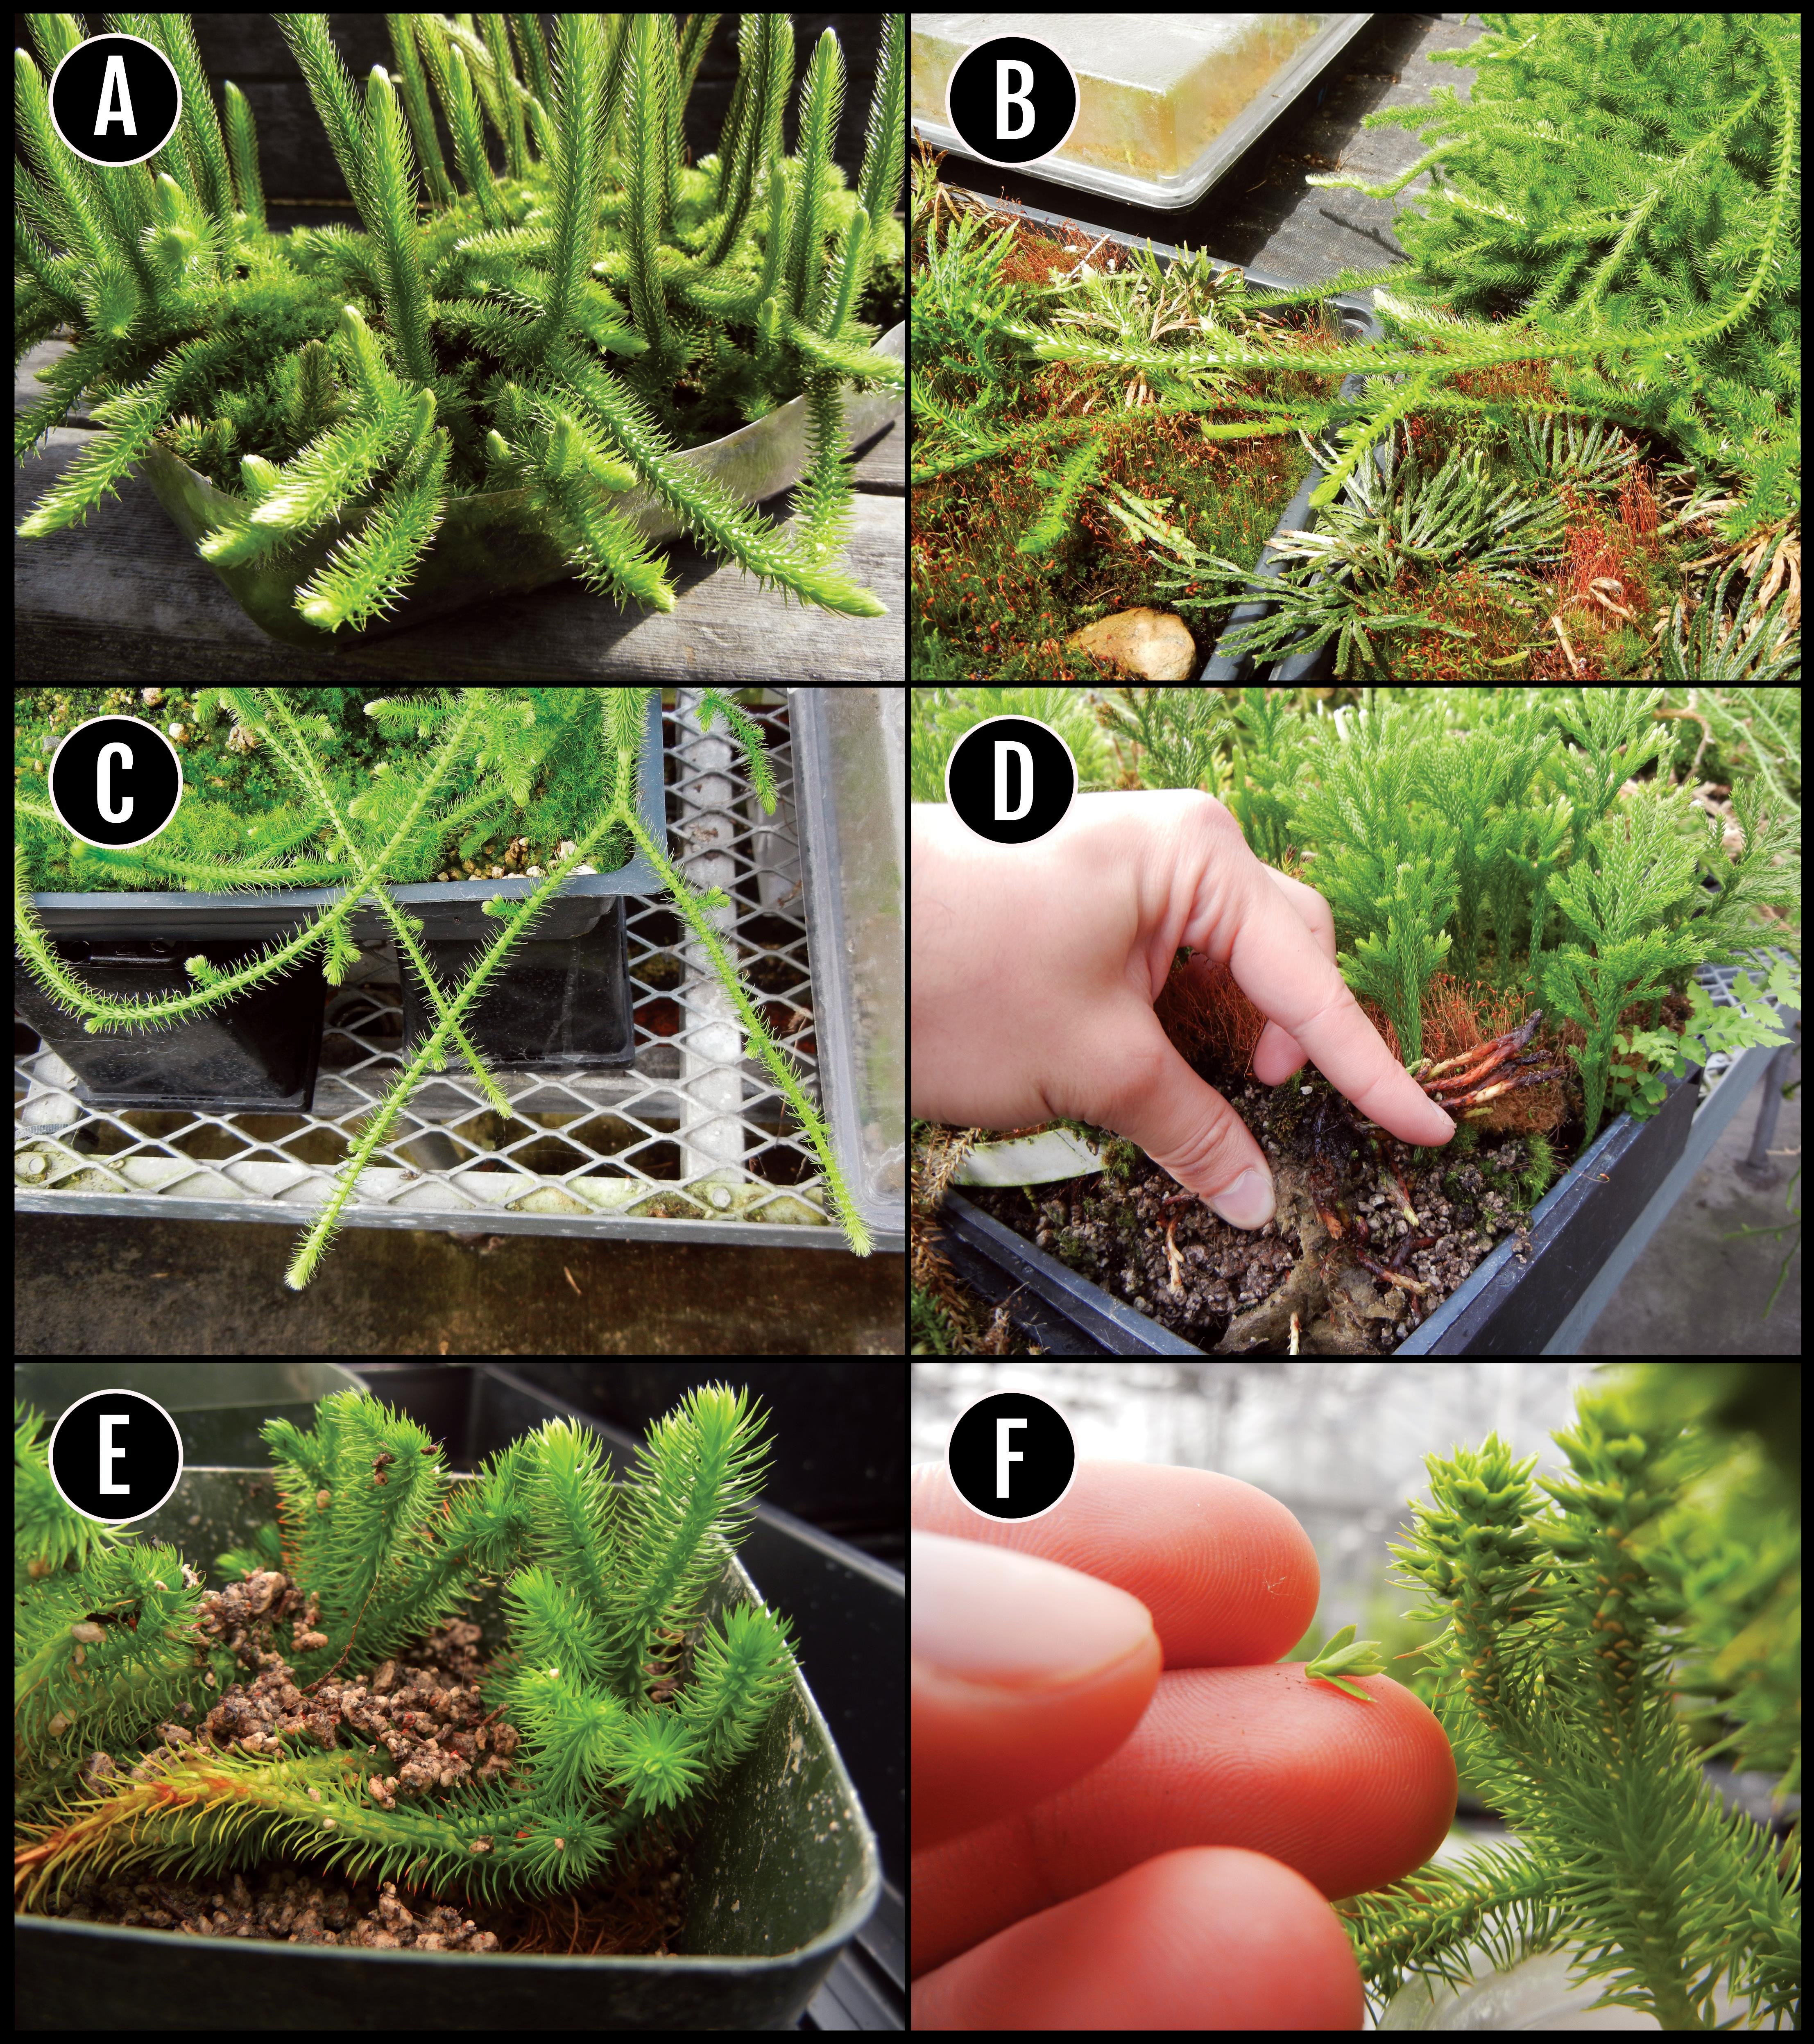 Cultivation Techniques for Terrestrial Clubmosses